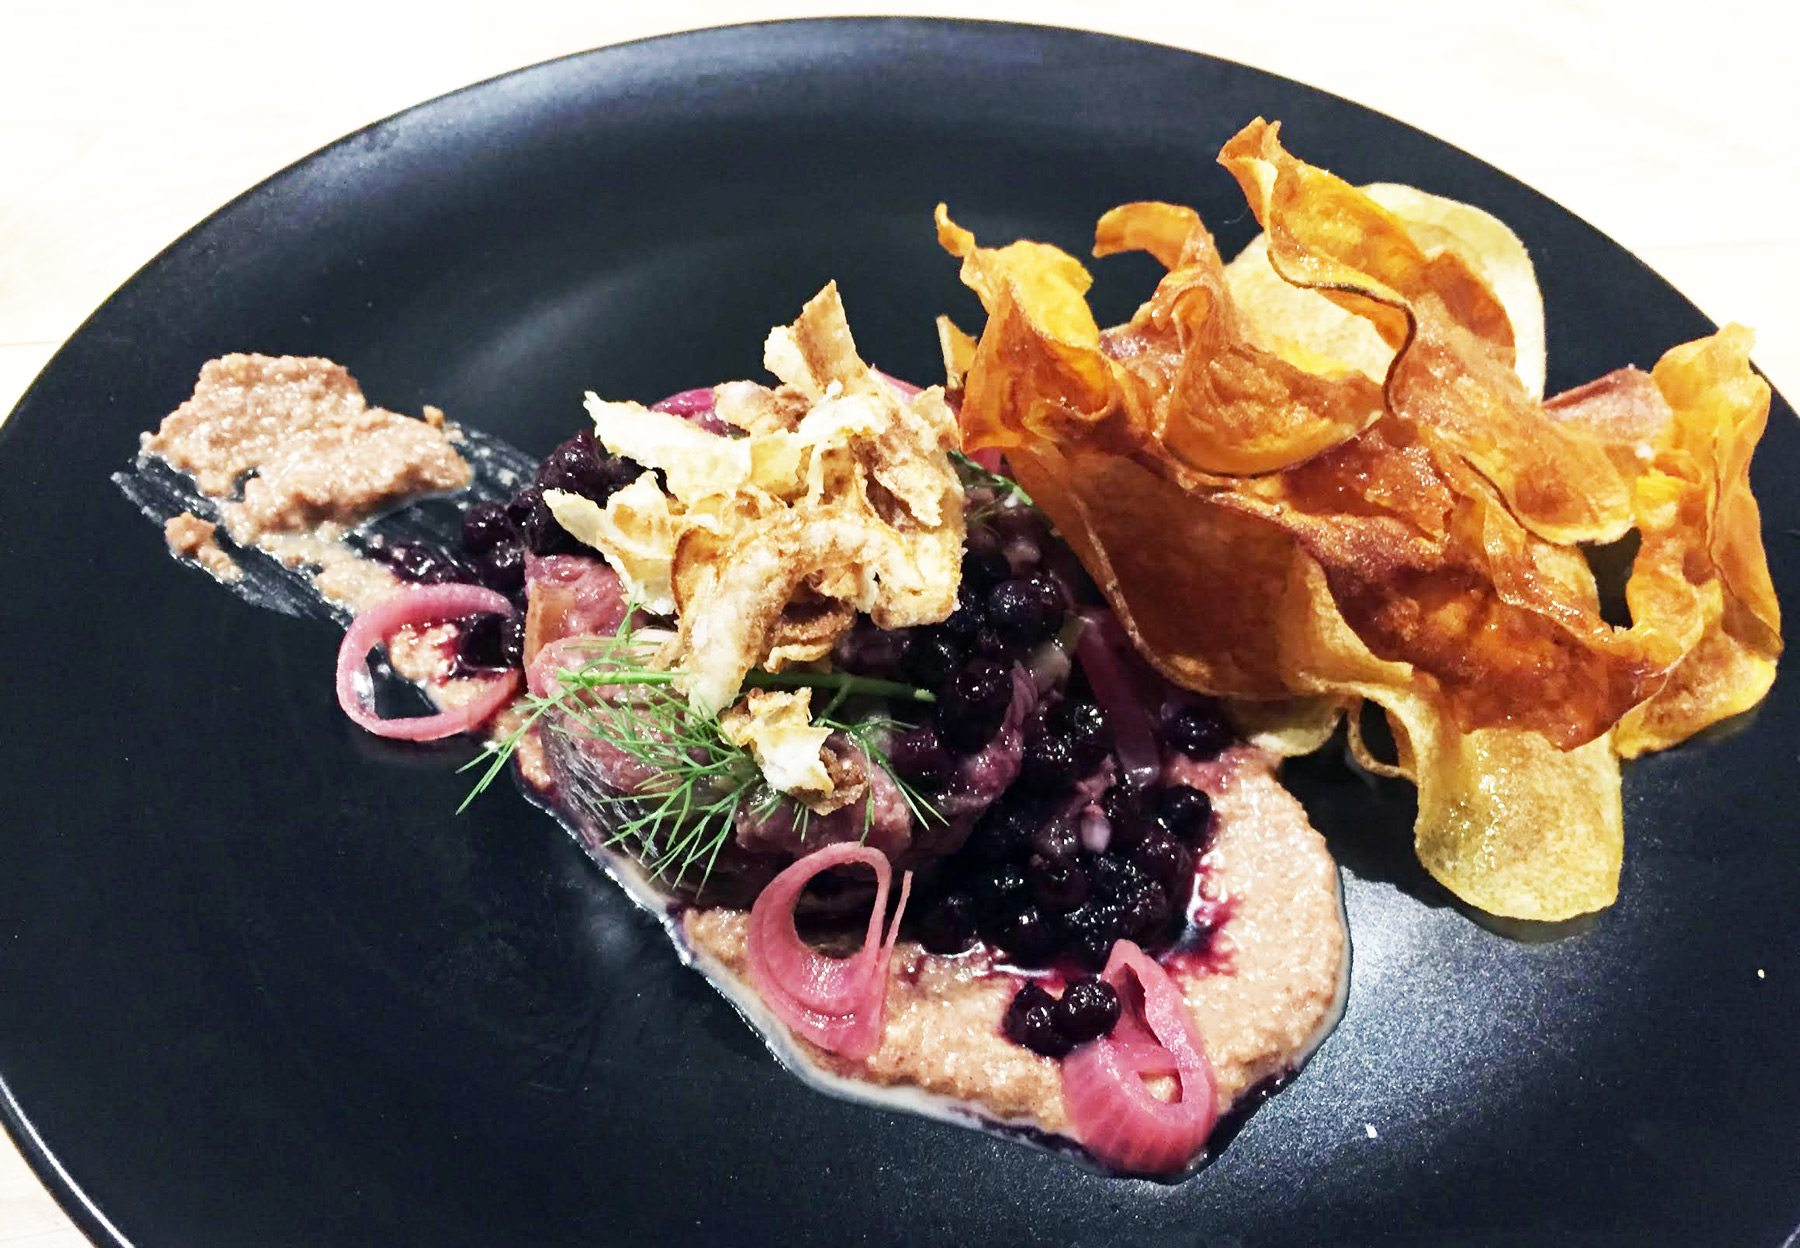 A full flavoured venison tartare with a yogurt whip, sweetened with date and nubbly with walnut